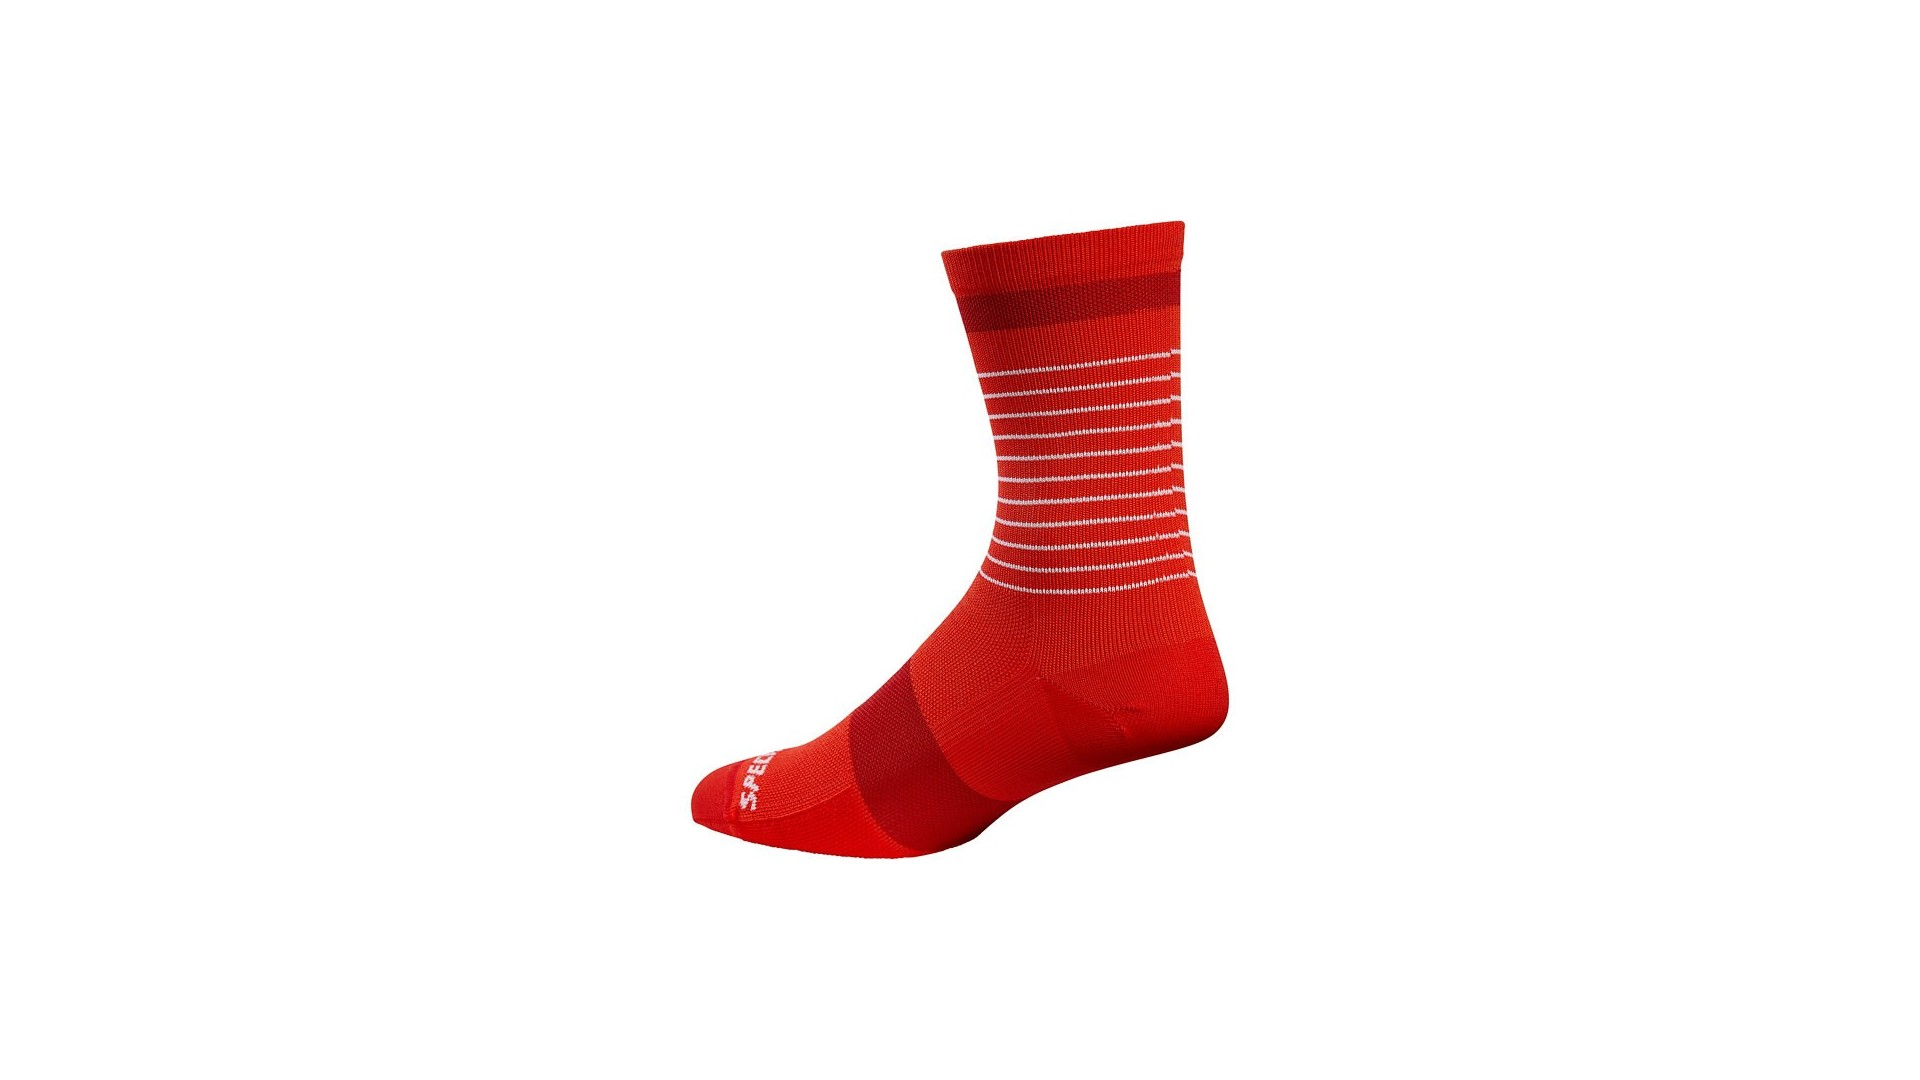 Road Tall Calcetines Invierno Specialized Roio/Rayas Blancas 1 IBKBike.es